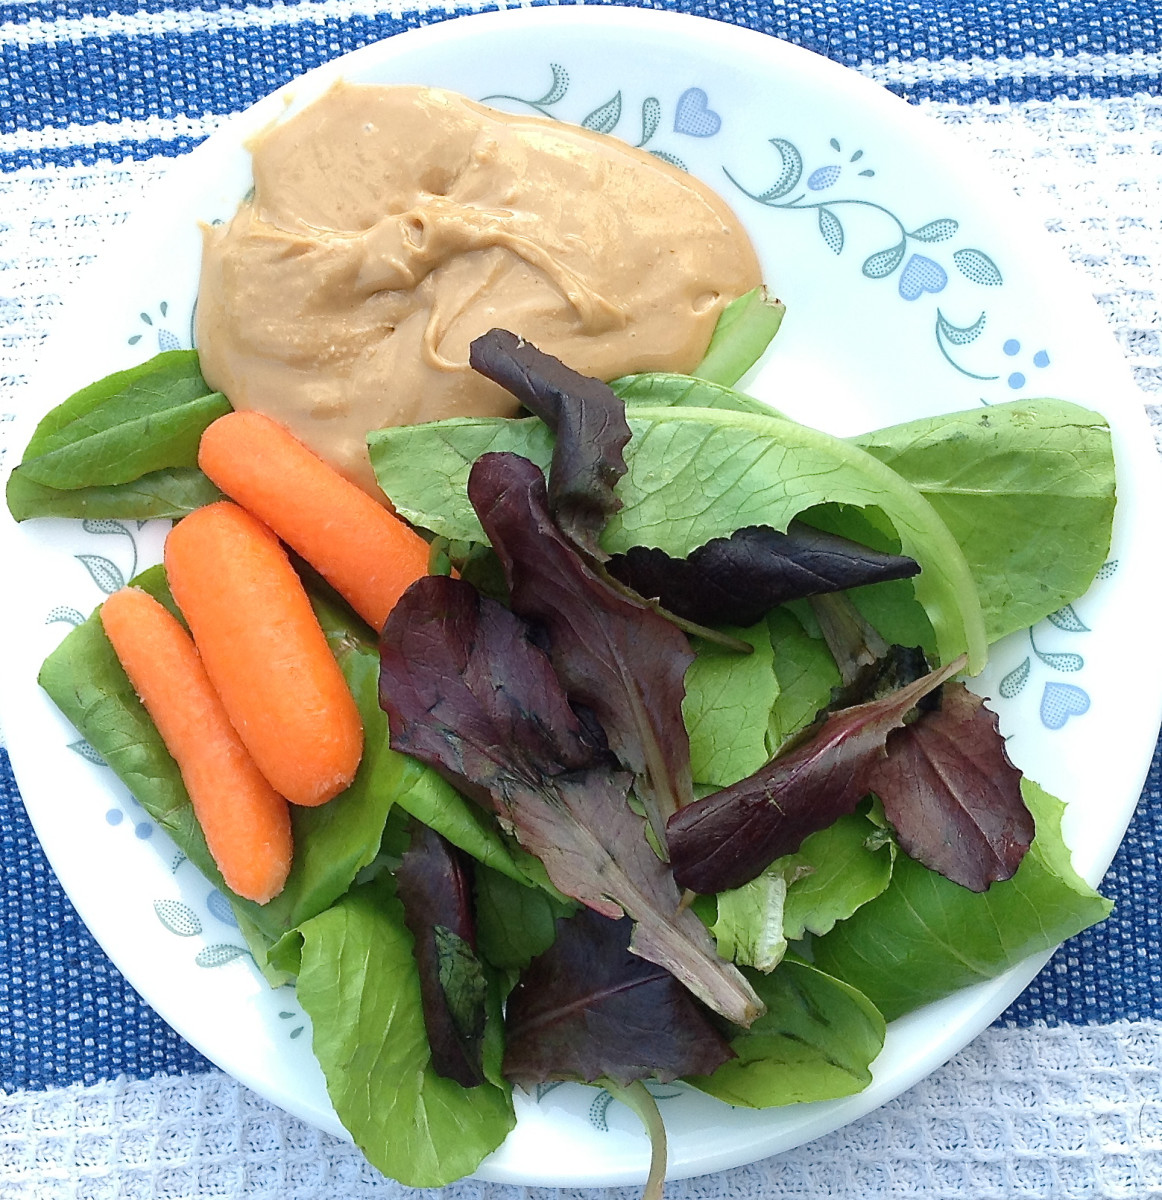 I include dark salad greens, carrots, and cashew butter in the smoothie.